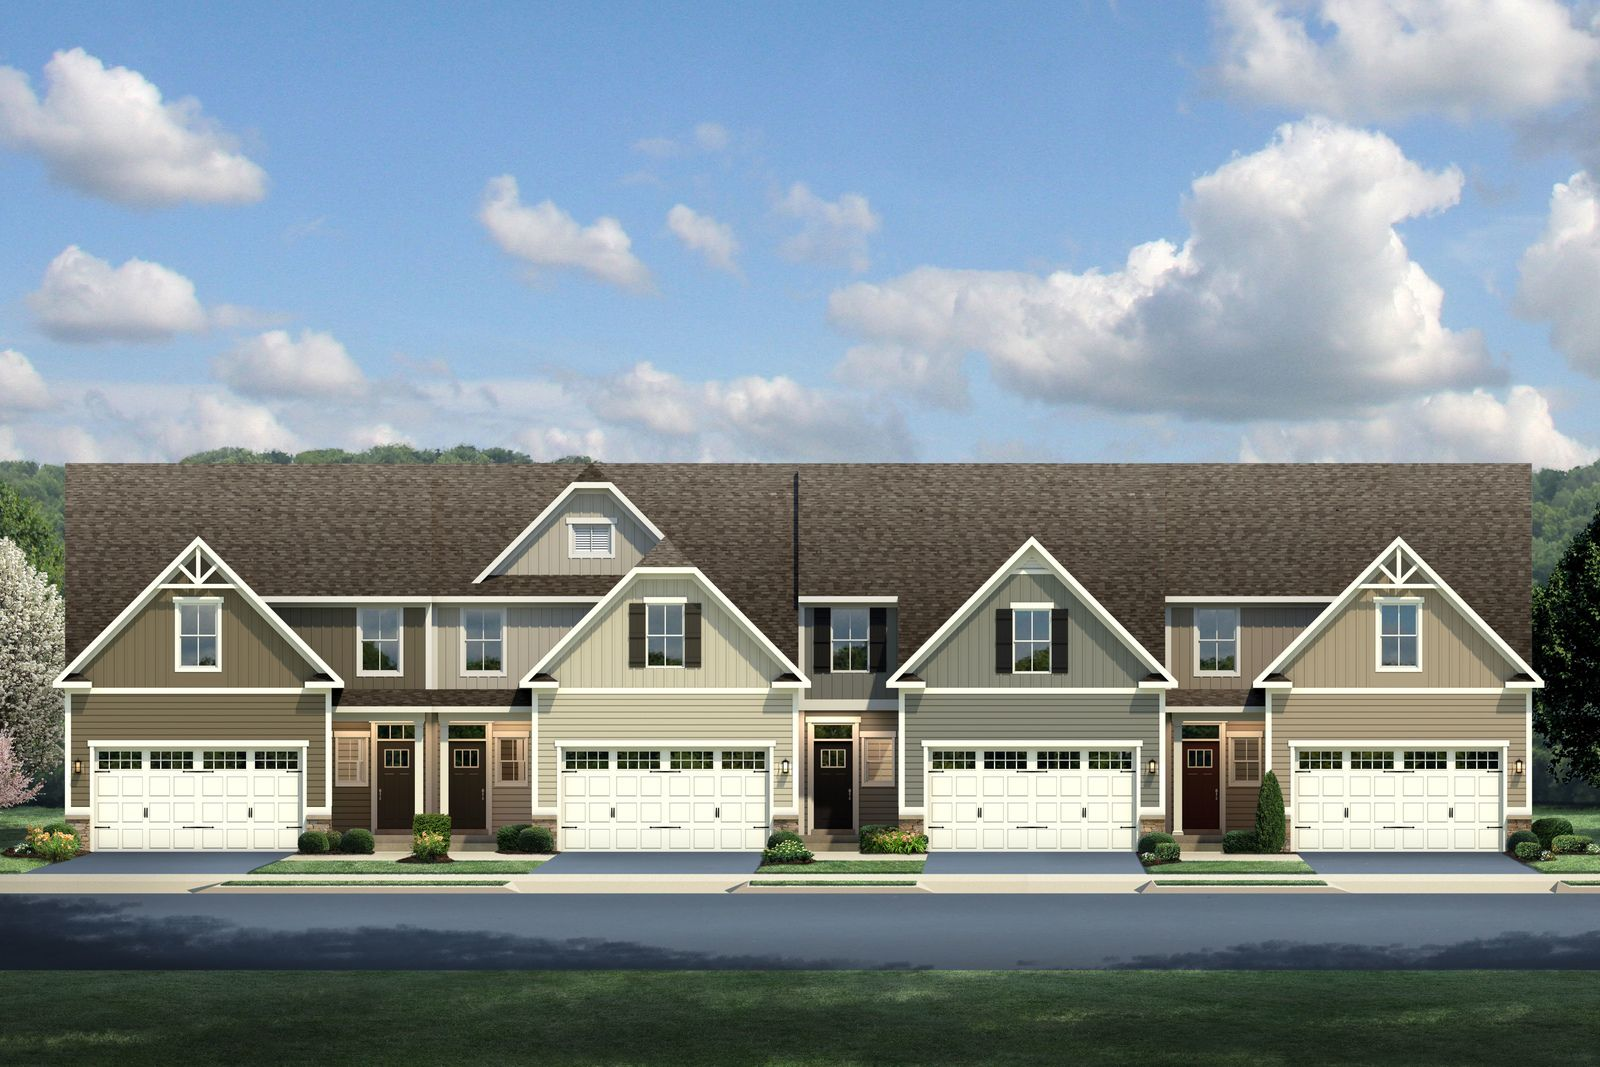 Welcome home to Grove Pointe:The most convenient new community to Pittsburgh, near the T-Station & Cool Springs. Townhomes with 1st-floor living.Click here to schedule an appointment.